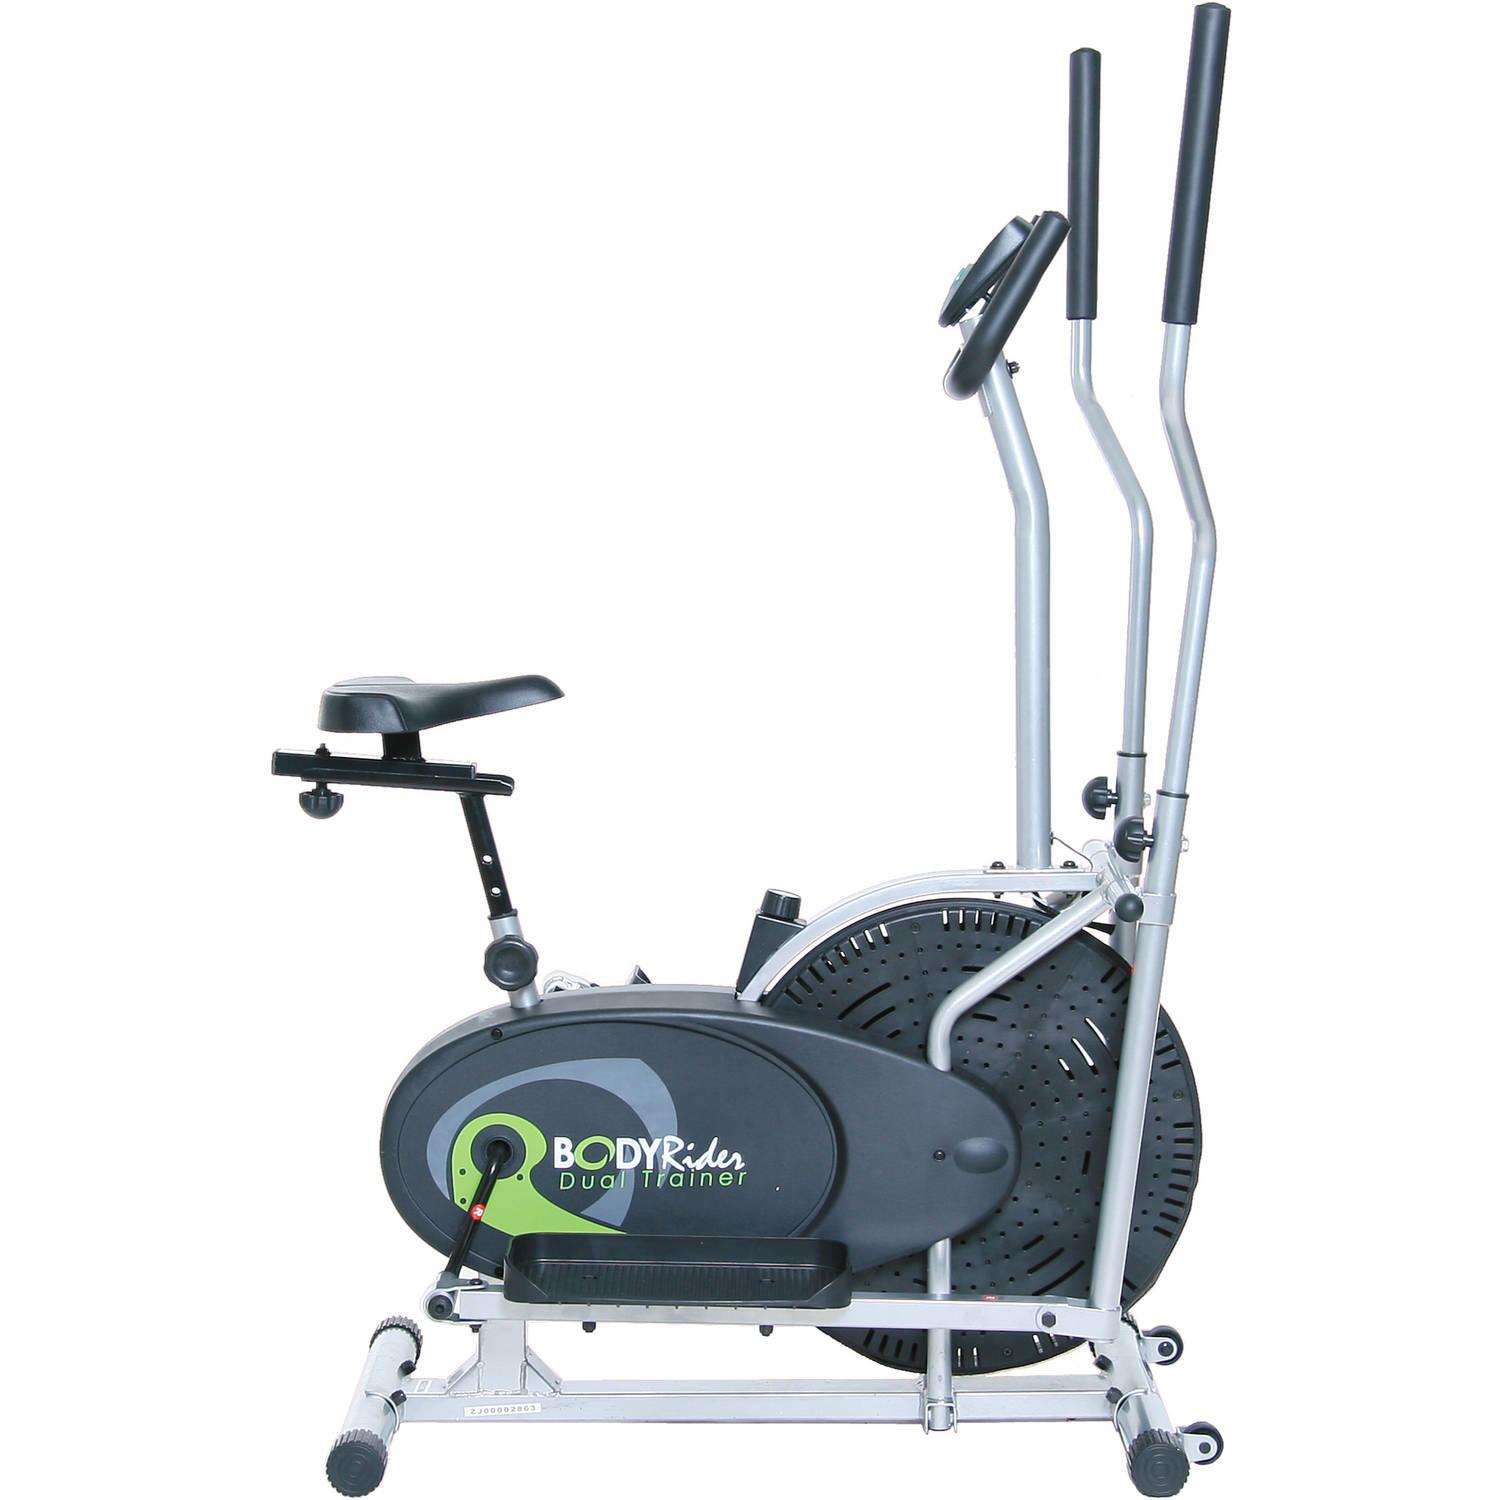 Body Rider brd2000 Elliptical